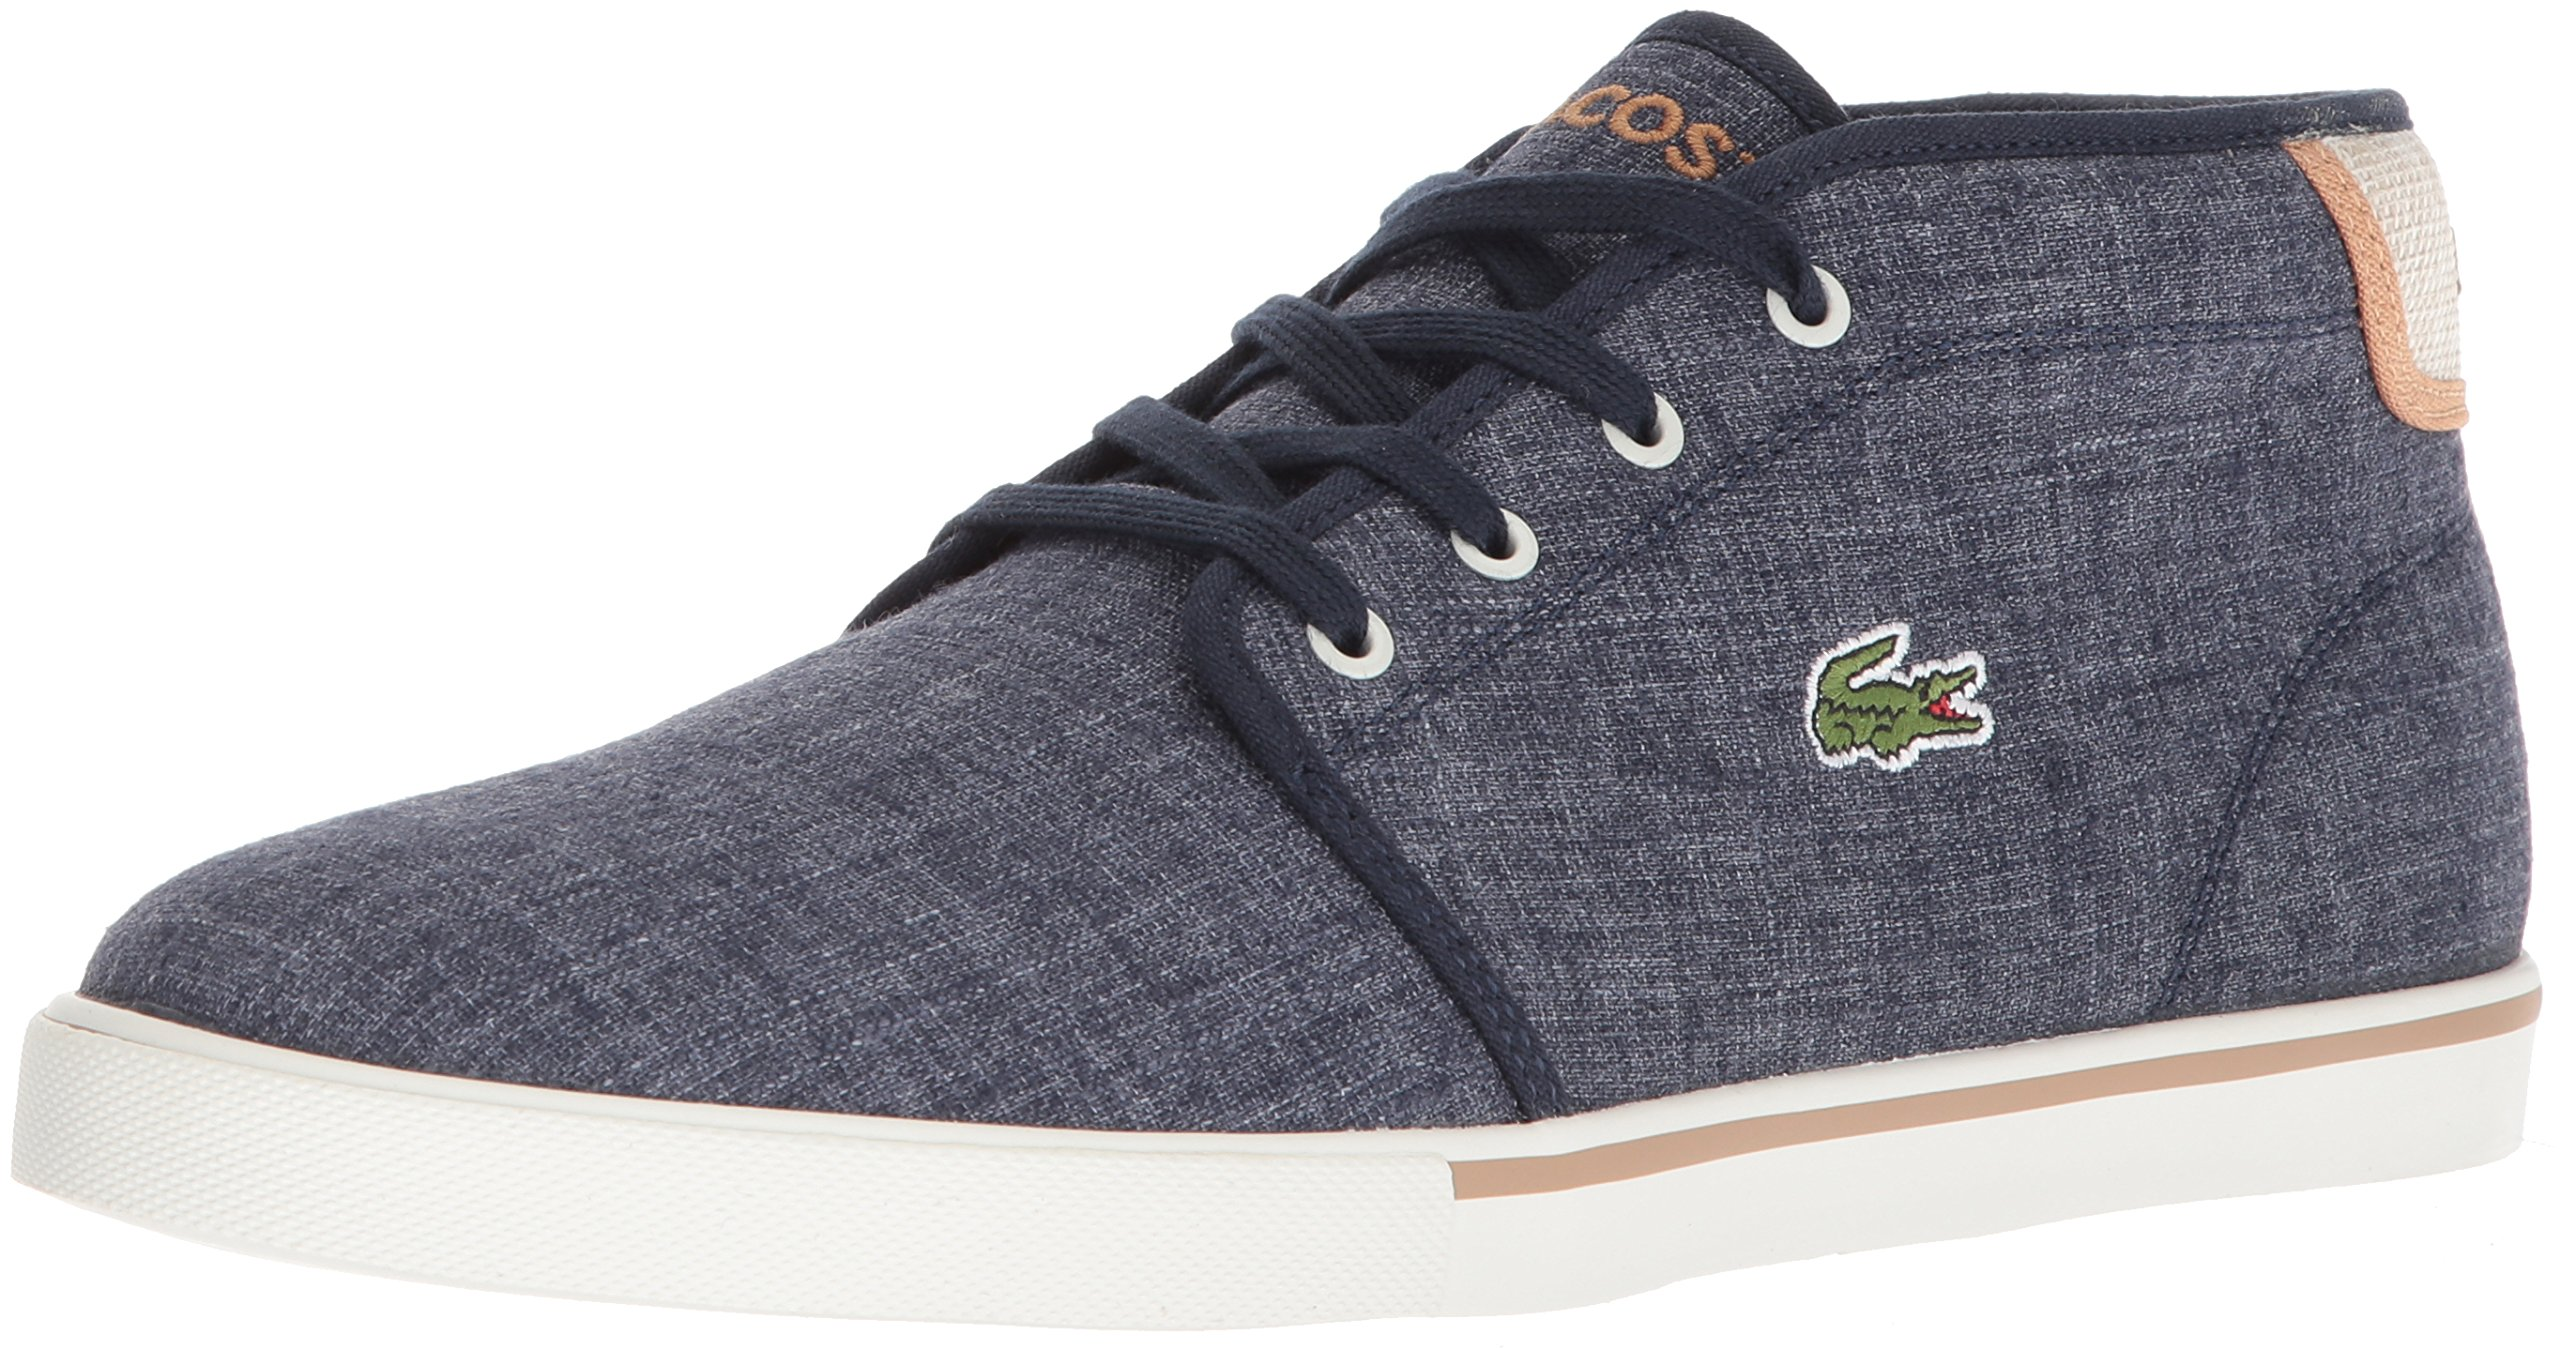 Lacoste Men's Ampthill Chukka Boot, Navy Canvas, 11 M US by Lacoste